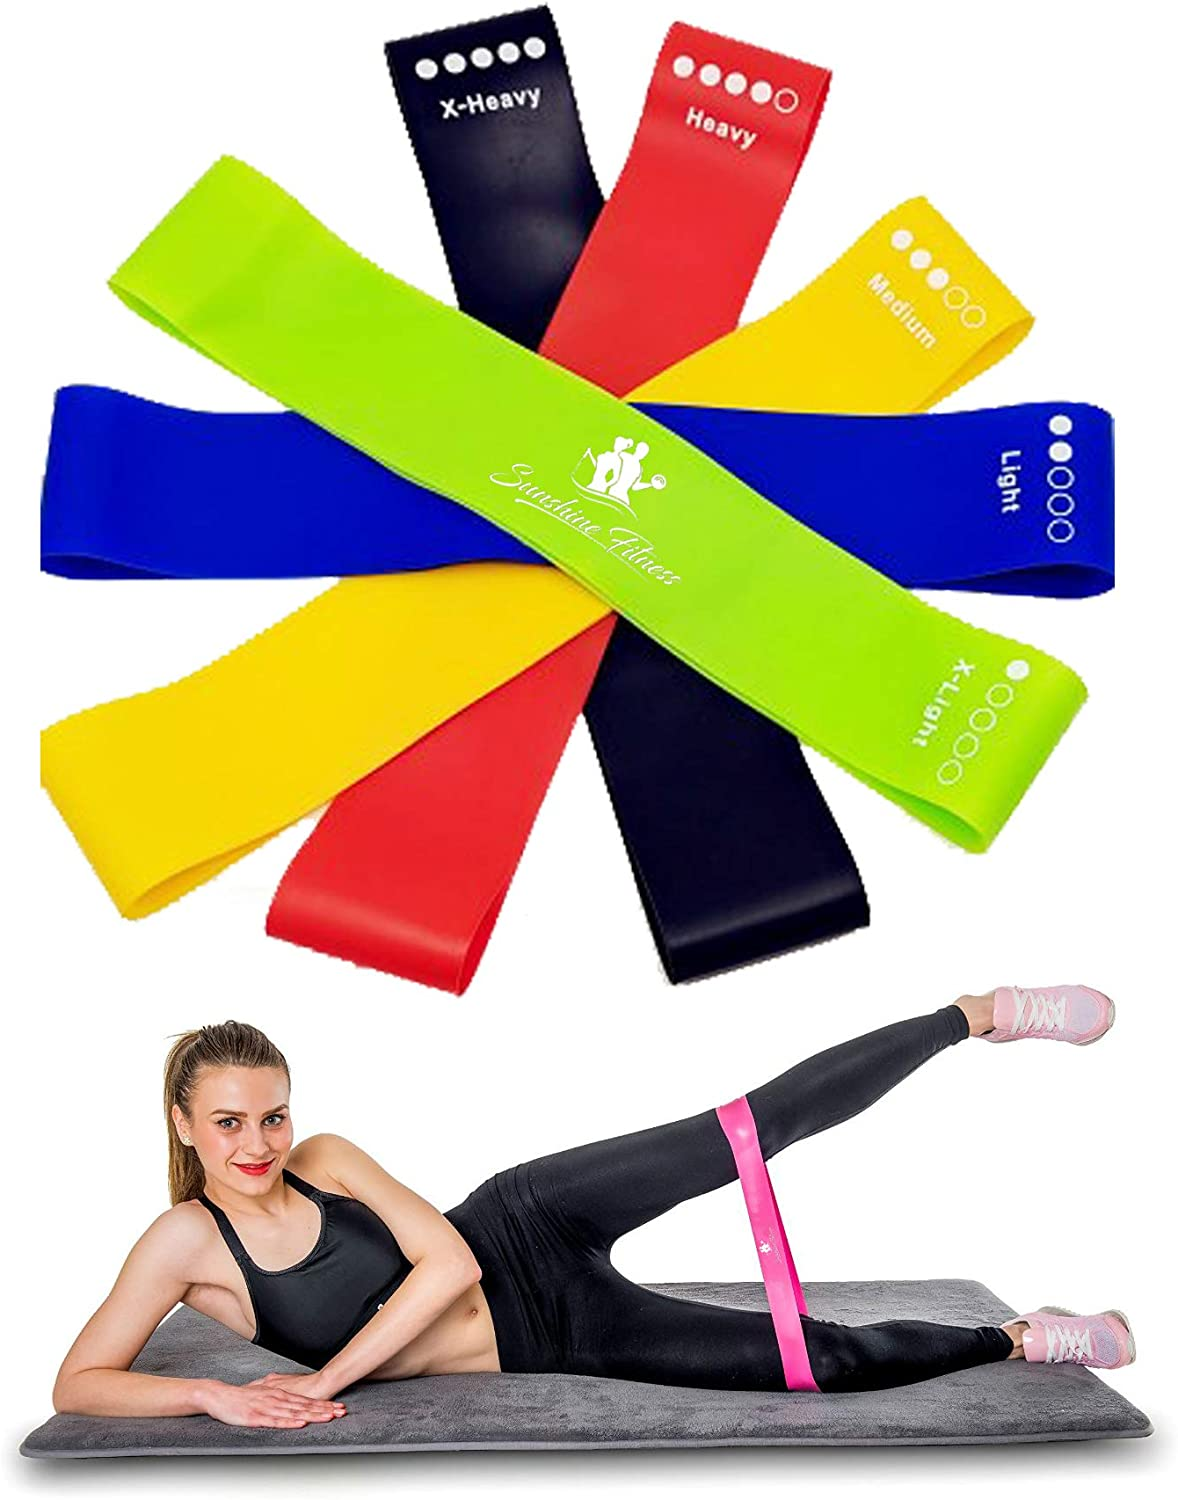 Sunshine Fitness Resistance Loop Bands Elastic Slip Max 87% OFF Exerci - Non Super beauty product restock quality top!